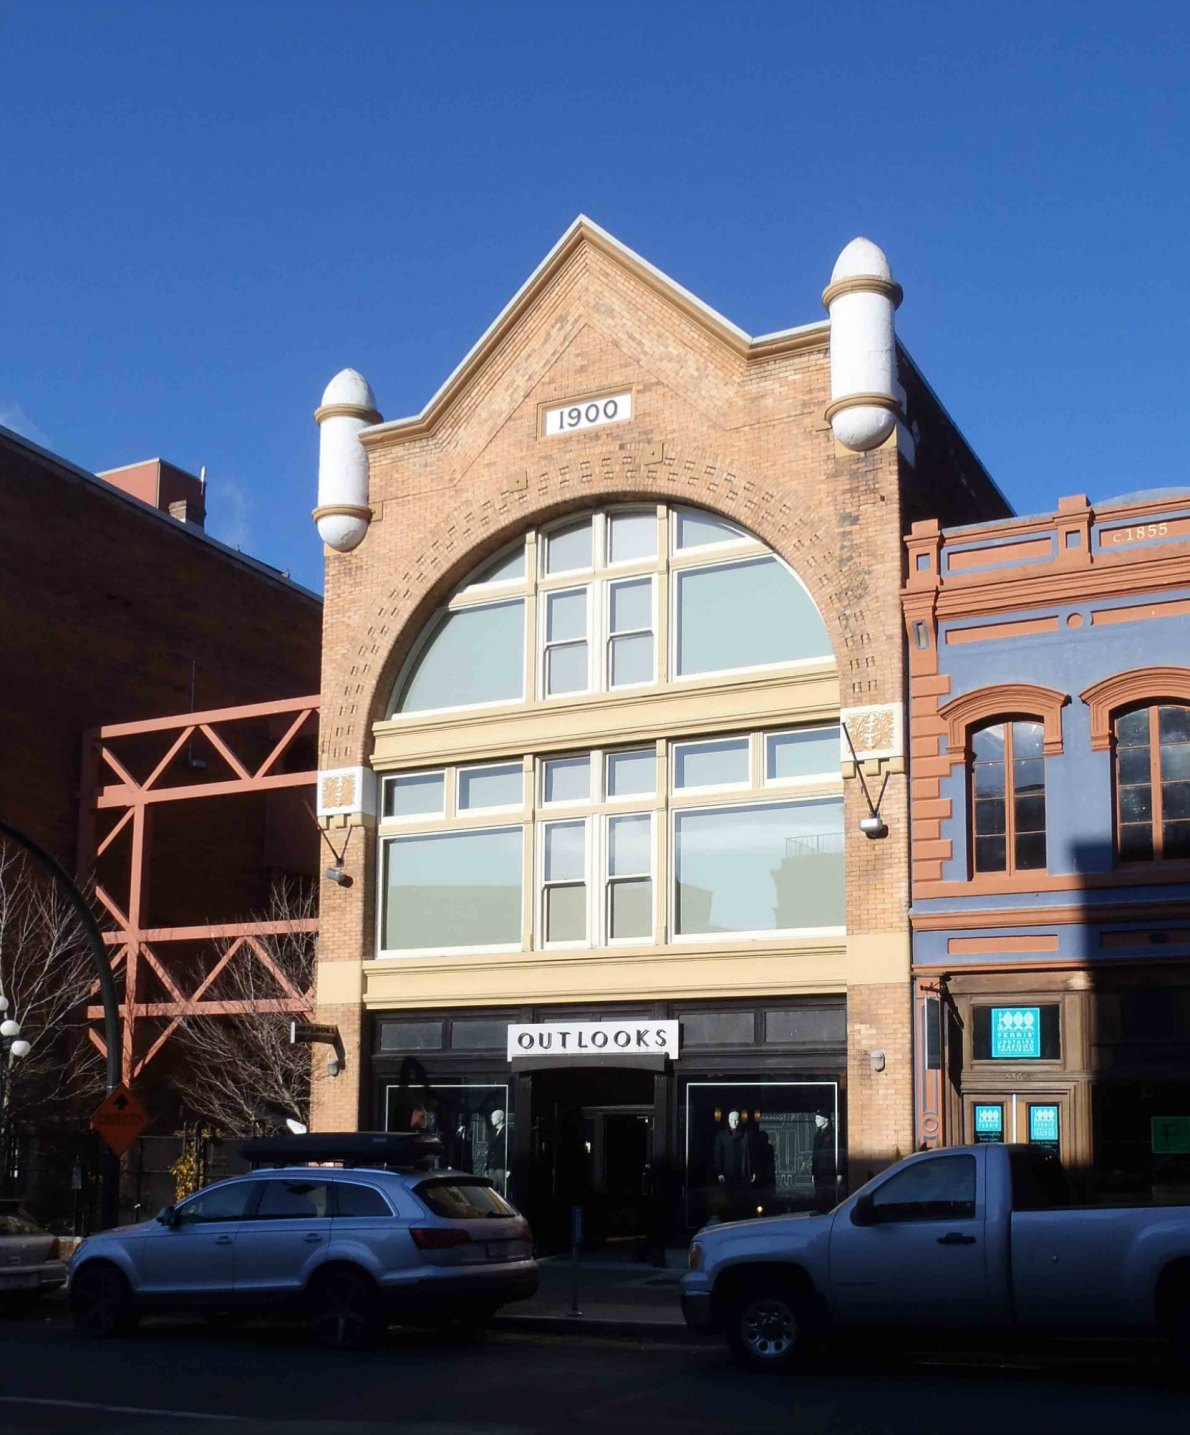 Earle Building, 530-534 Yates Street. Designed in 1900 for Thomas Earle by architect Thomas Hooper.